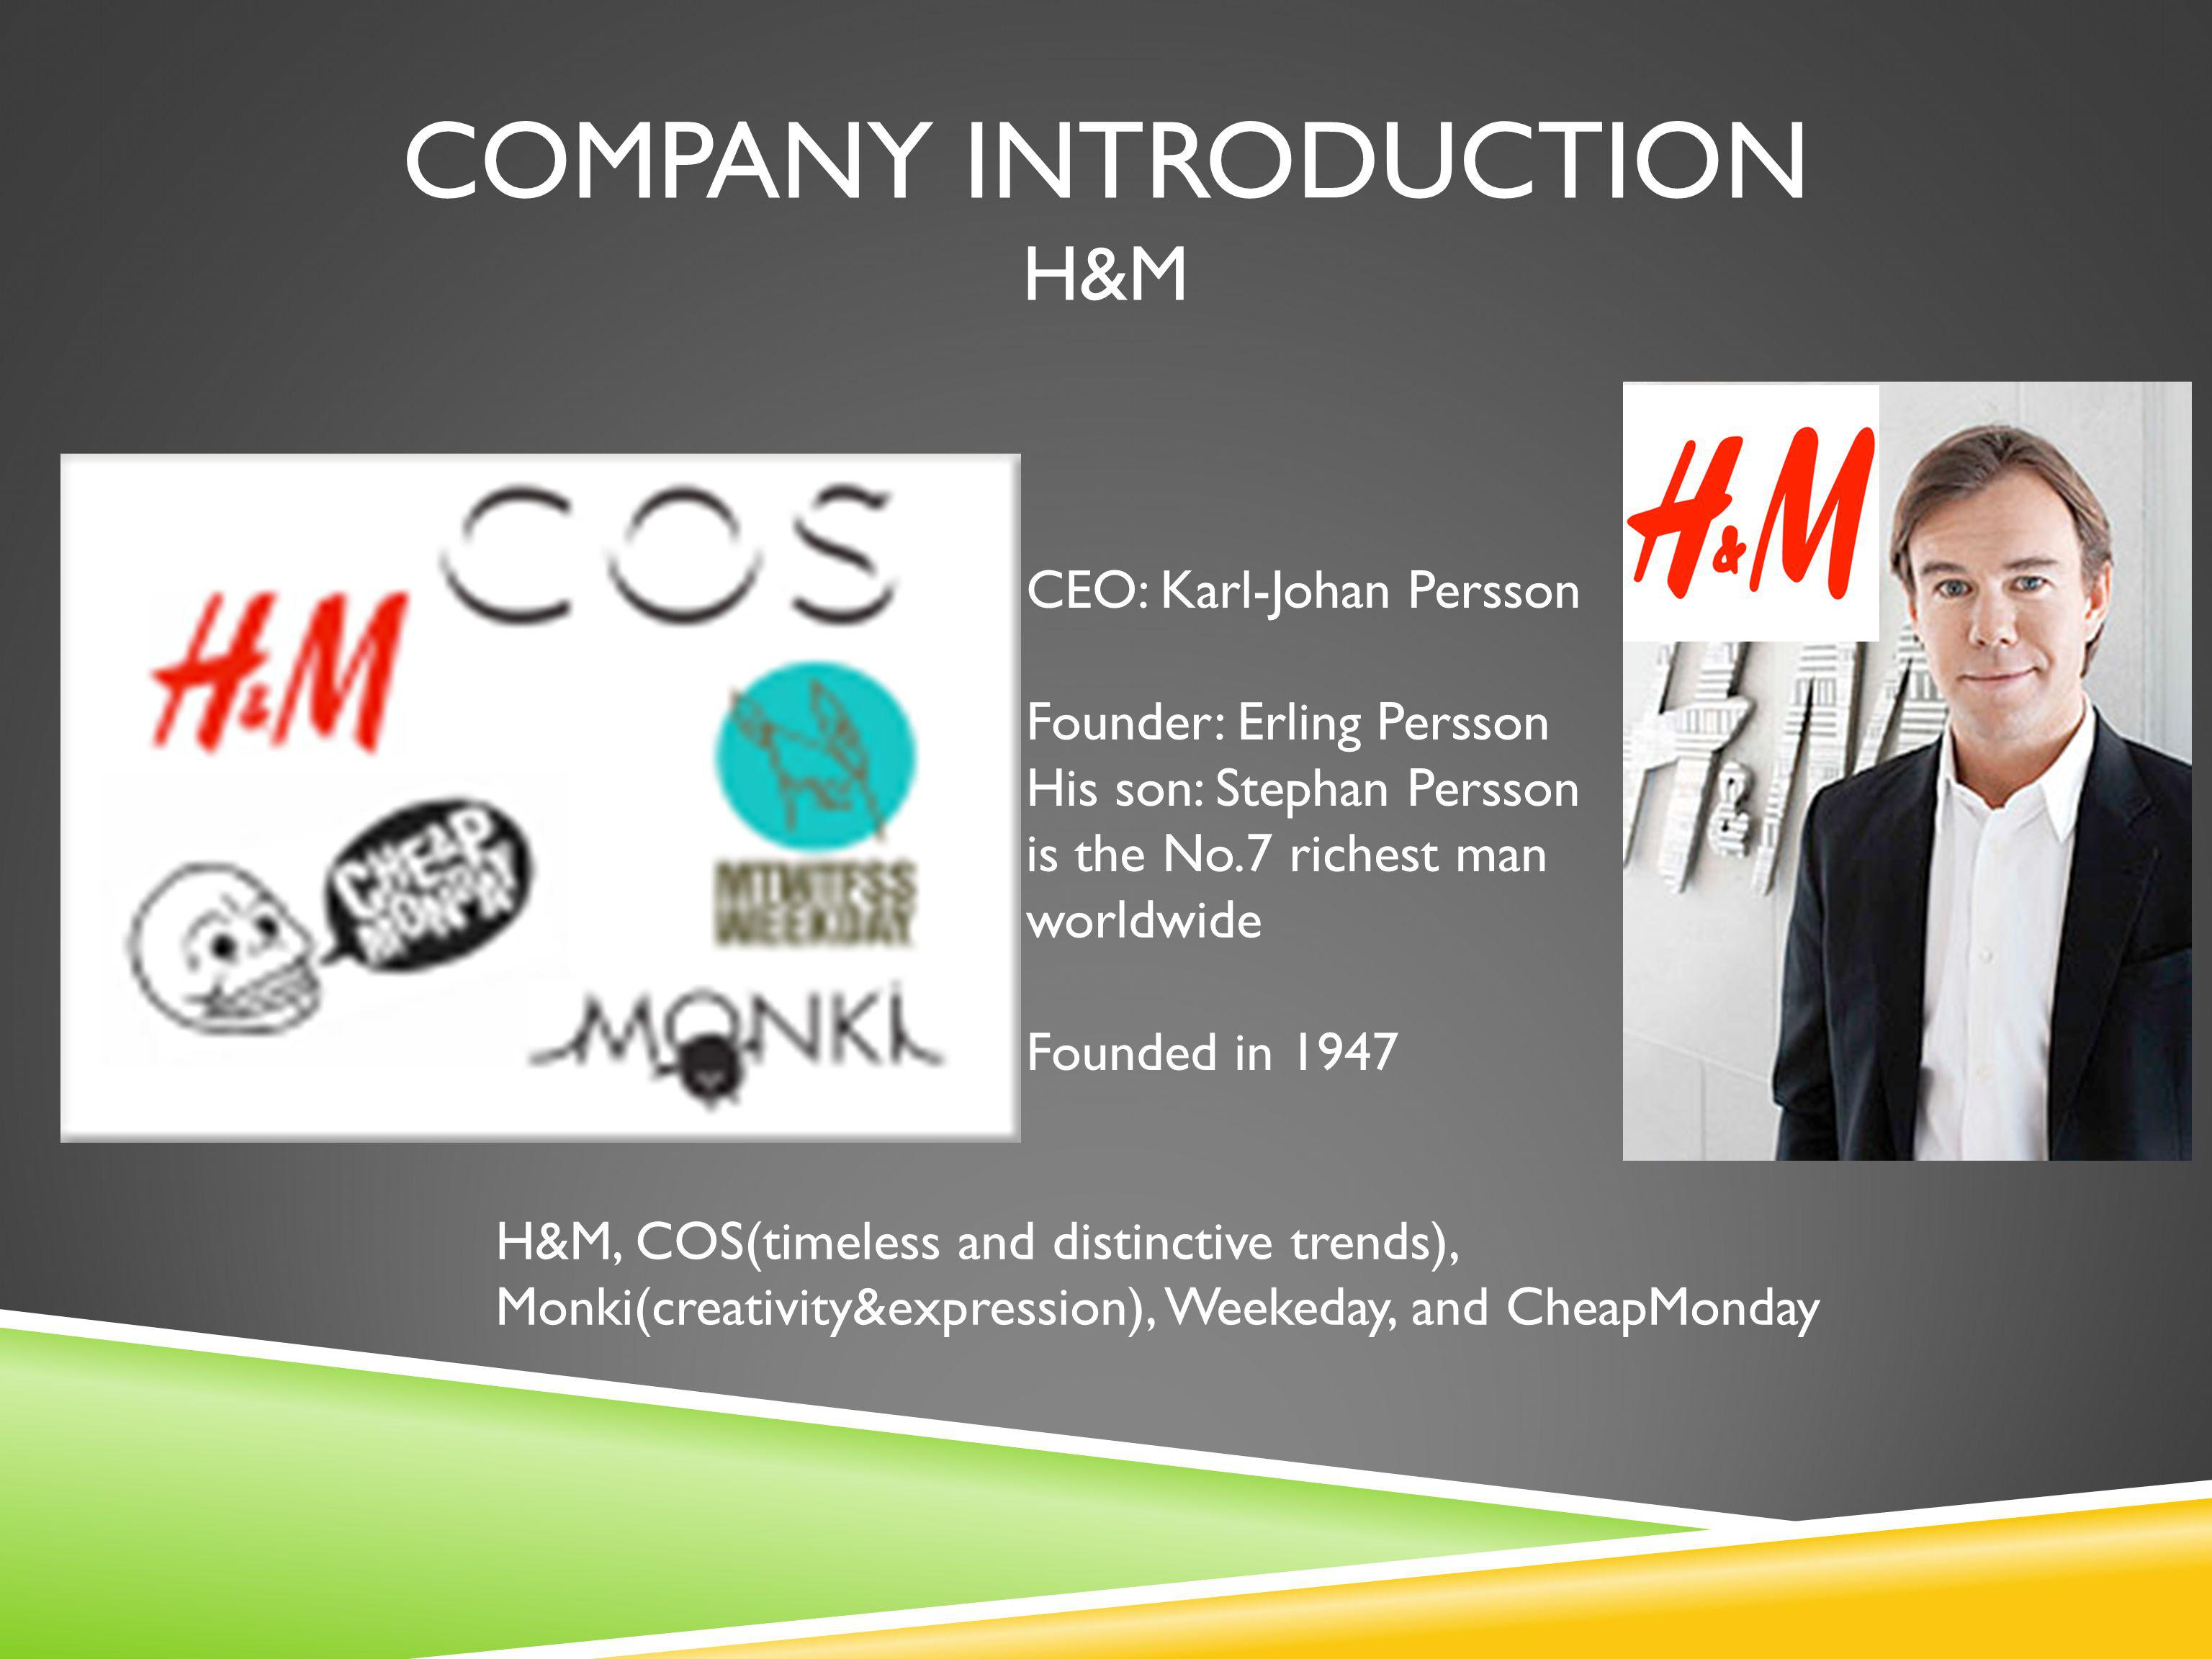 COMPANY INTRODUCTION H&M CEO: Karl-Johan Persson Founder: Erling Persson His son: Stephan Persson is the No.7 richest man worldwide Founded in 1947 H&M, COS(timeless and distinctive trends), Monki(creativity&expression), Weekeday, and CheapMonday